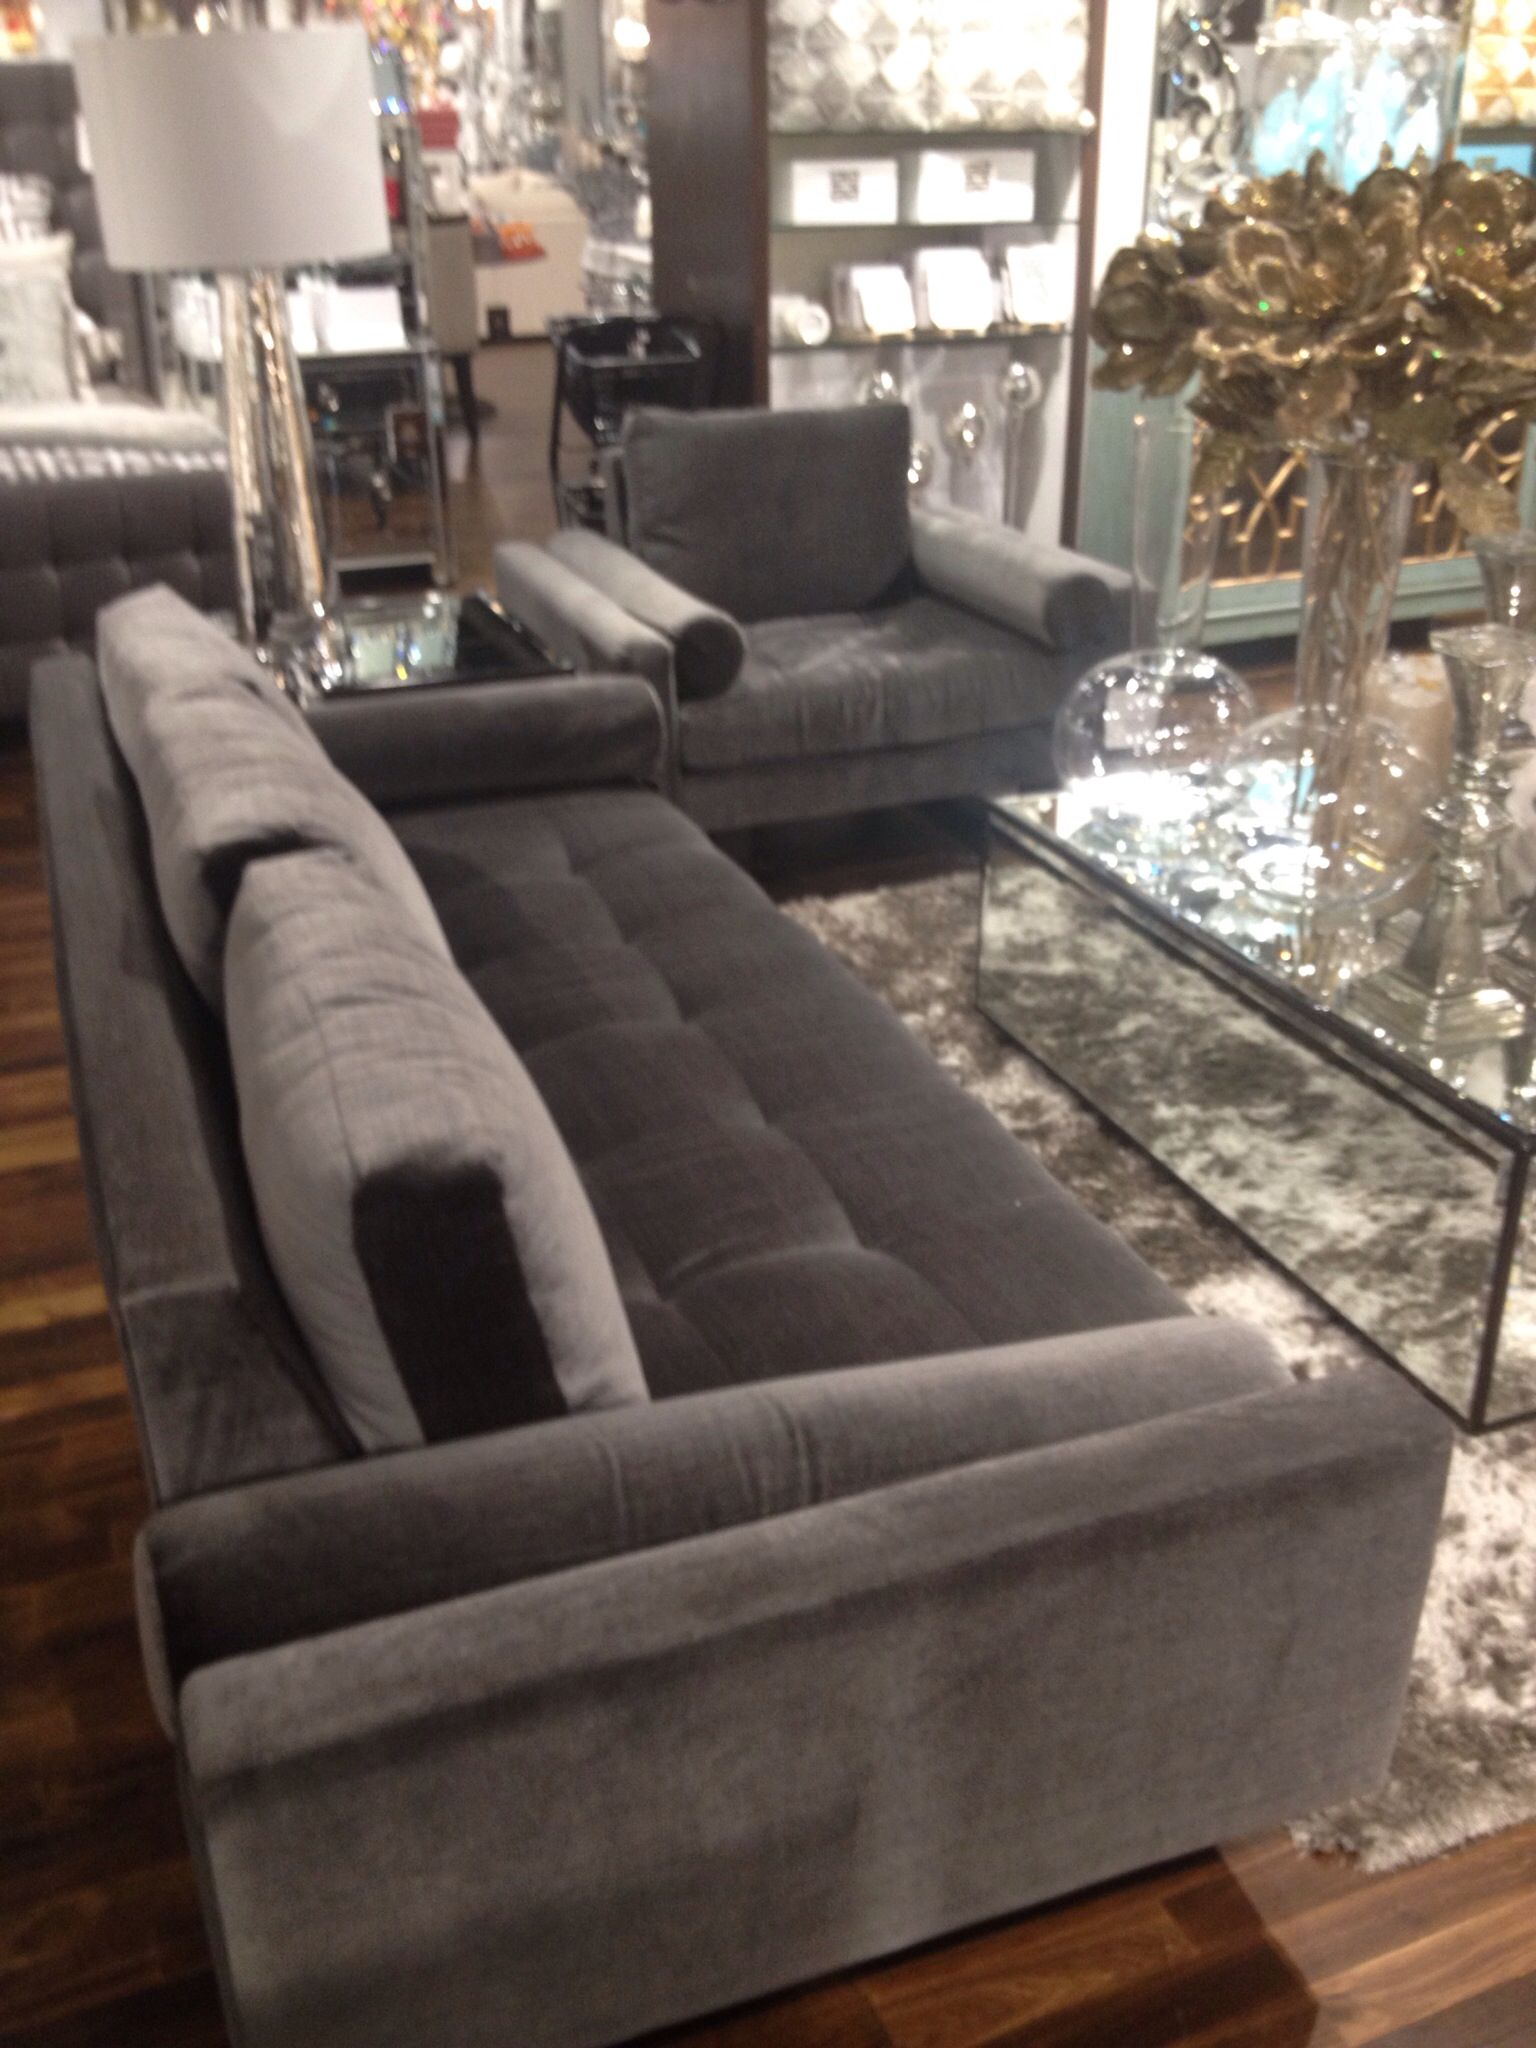 Jackson sofa & chair Zgallerie